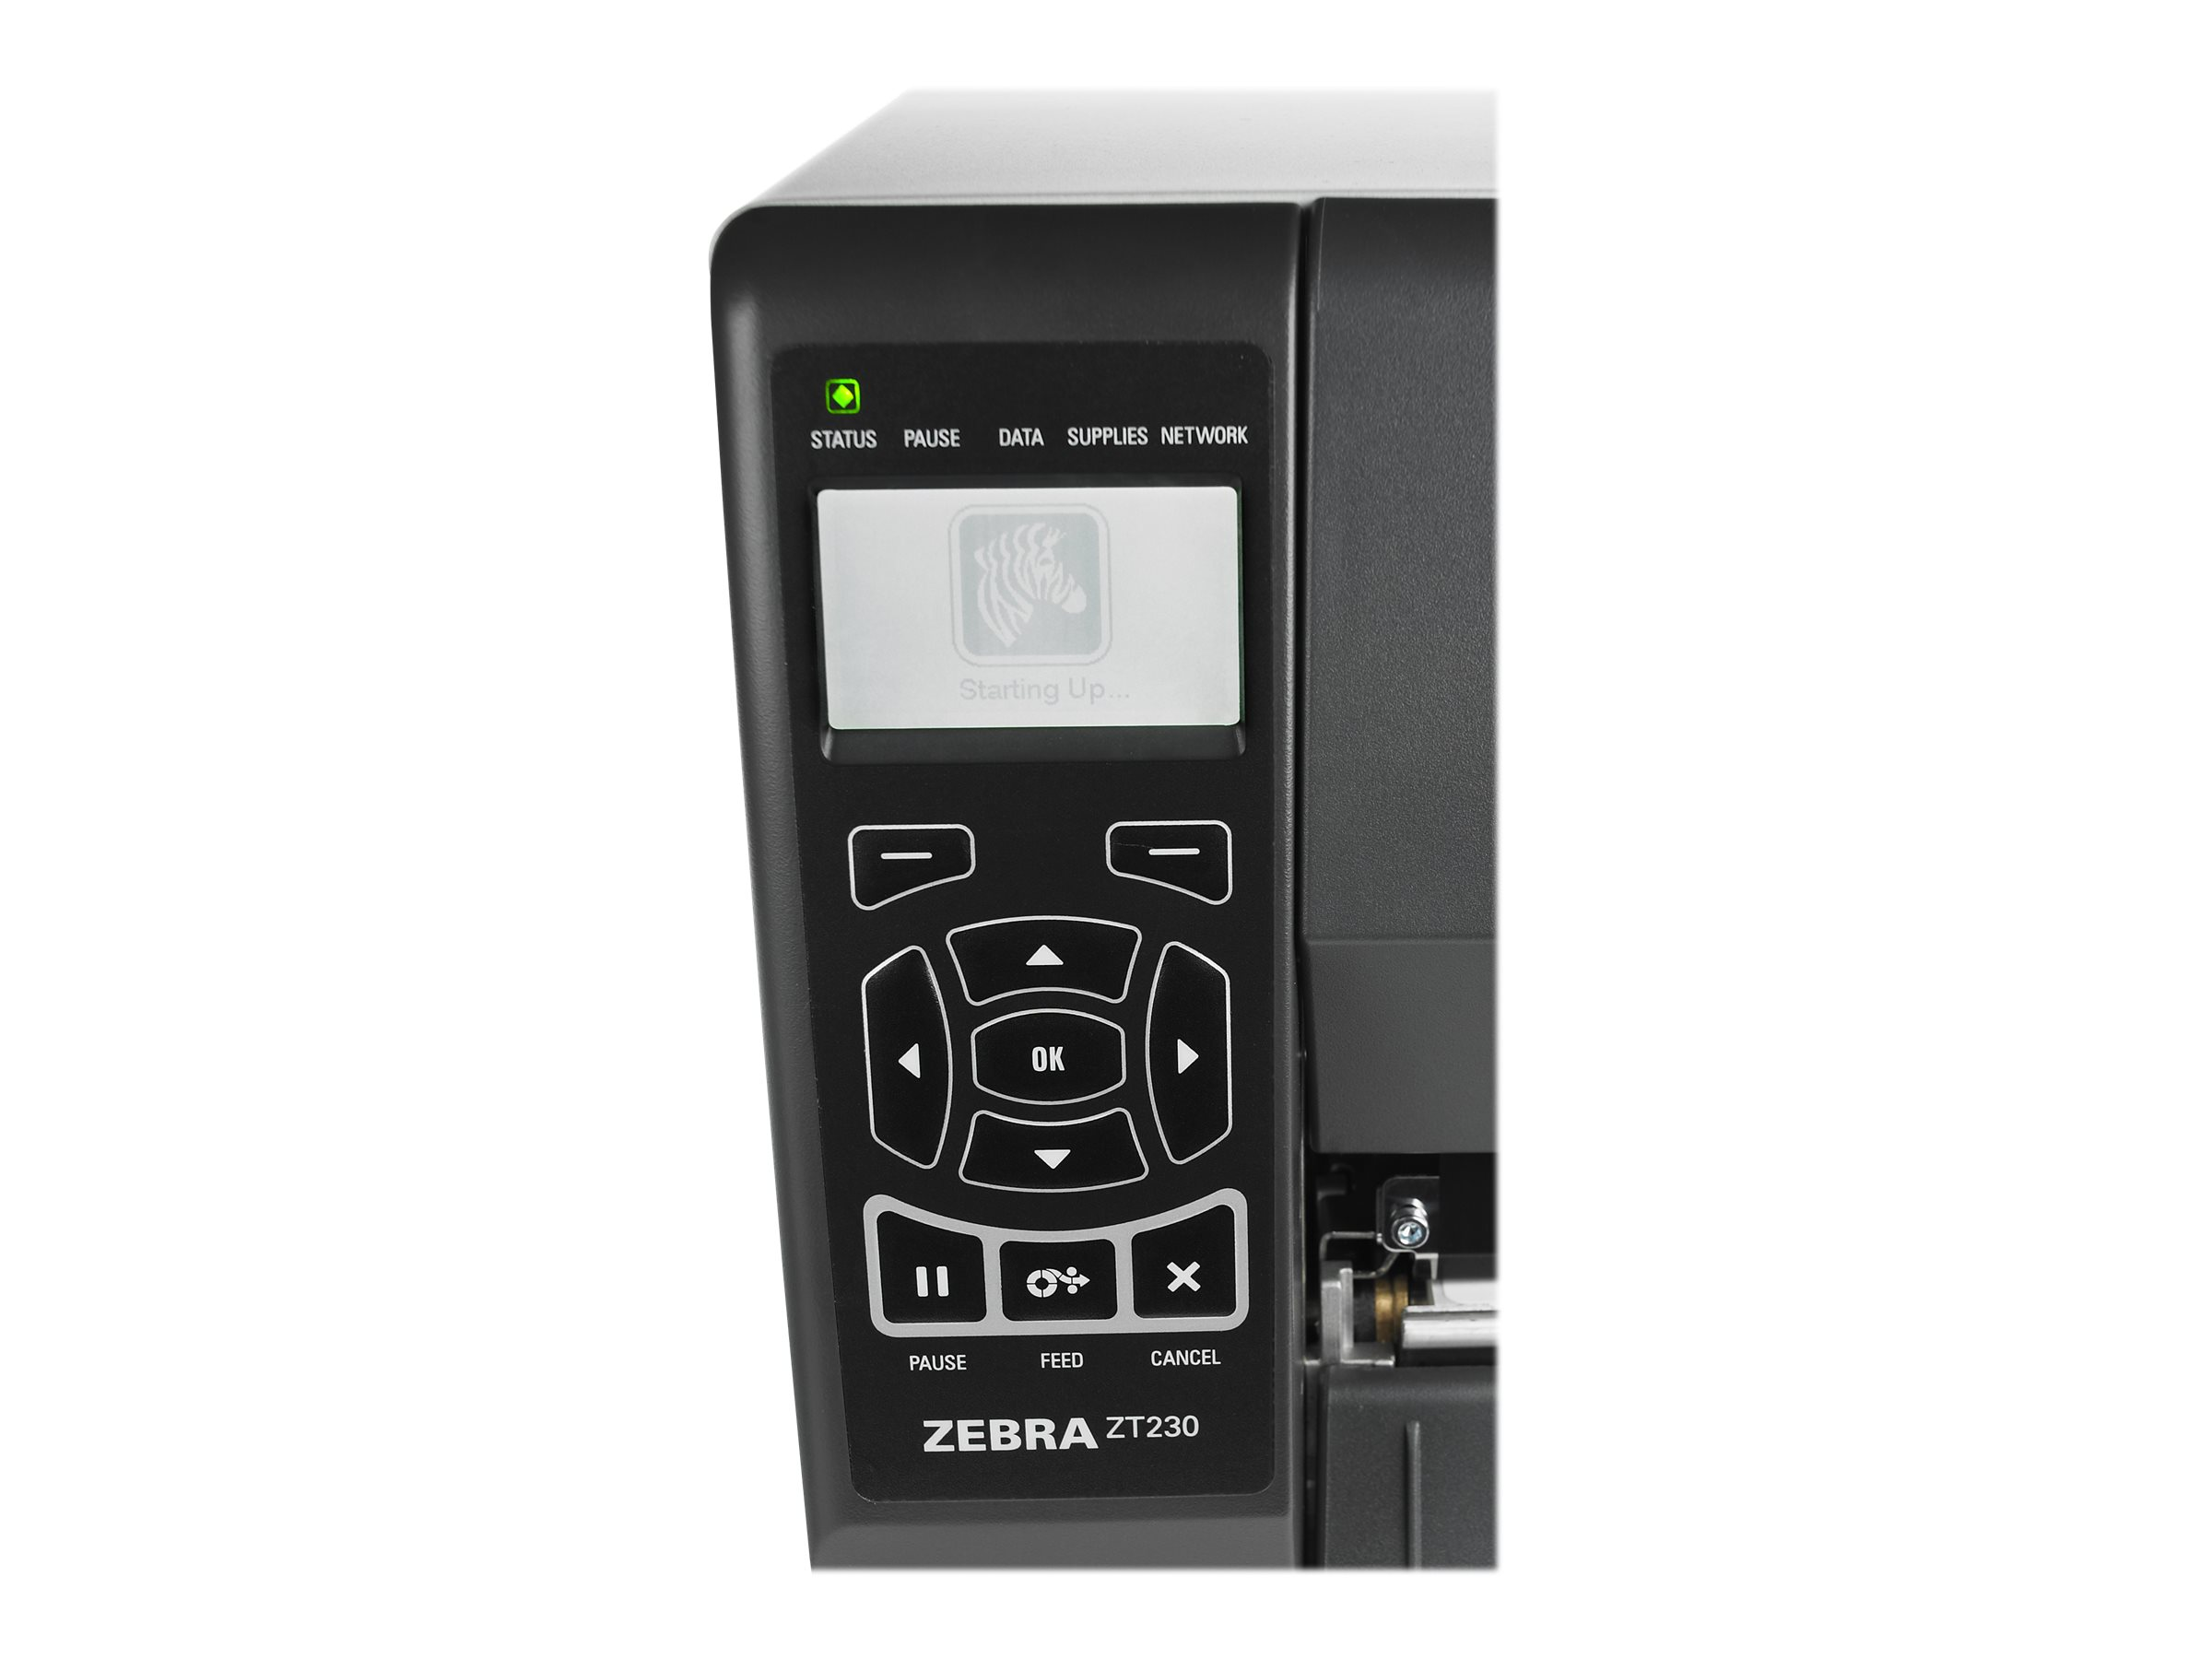 Zebra ZT230, 12 Punkte/mm (300dpi), Cutter, Display, ZPLII, USB, RS232, Ethernet, ZT23043-D2E200FZ